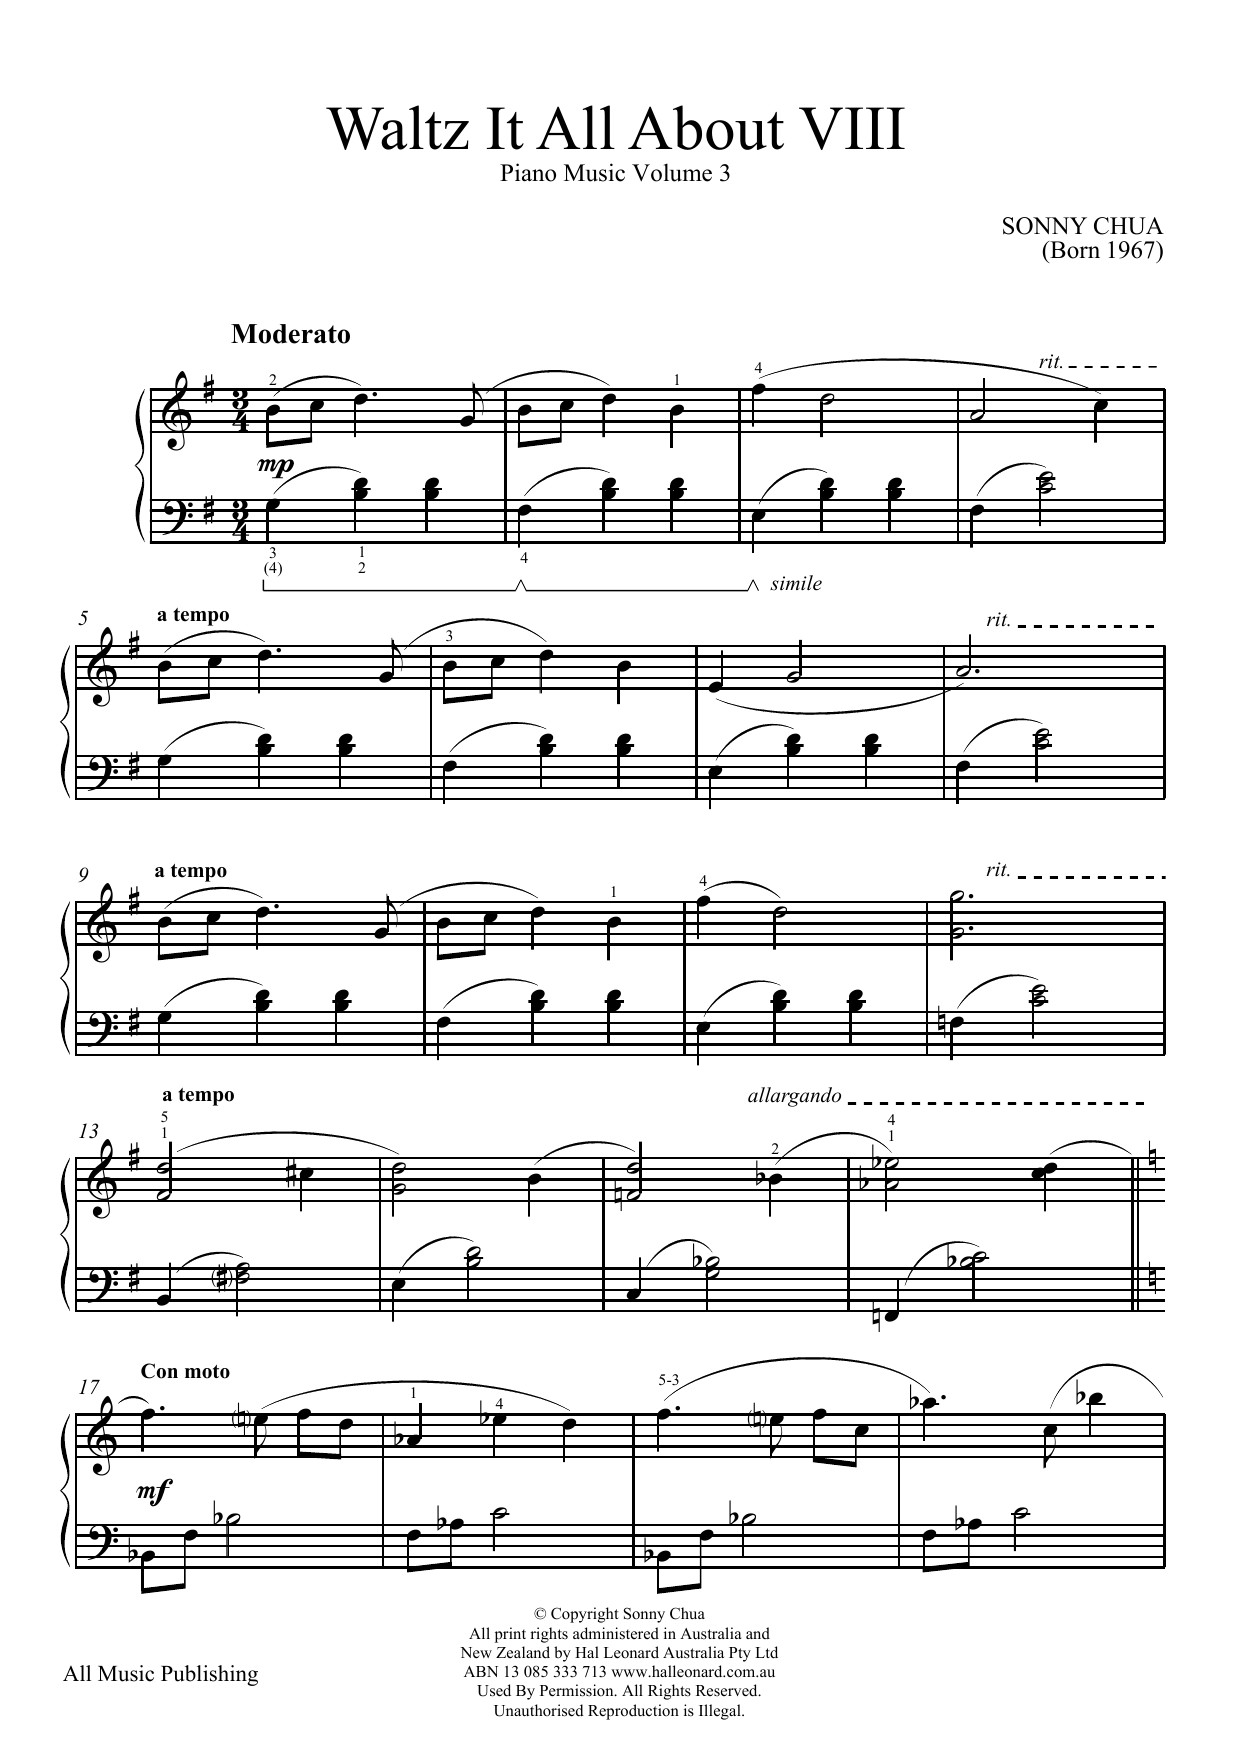 Sonny Chua Waltz It All About Viii (From Piano Music Vol 3) sheet music notes and chords